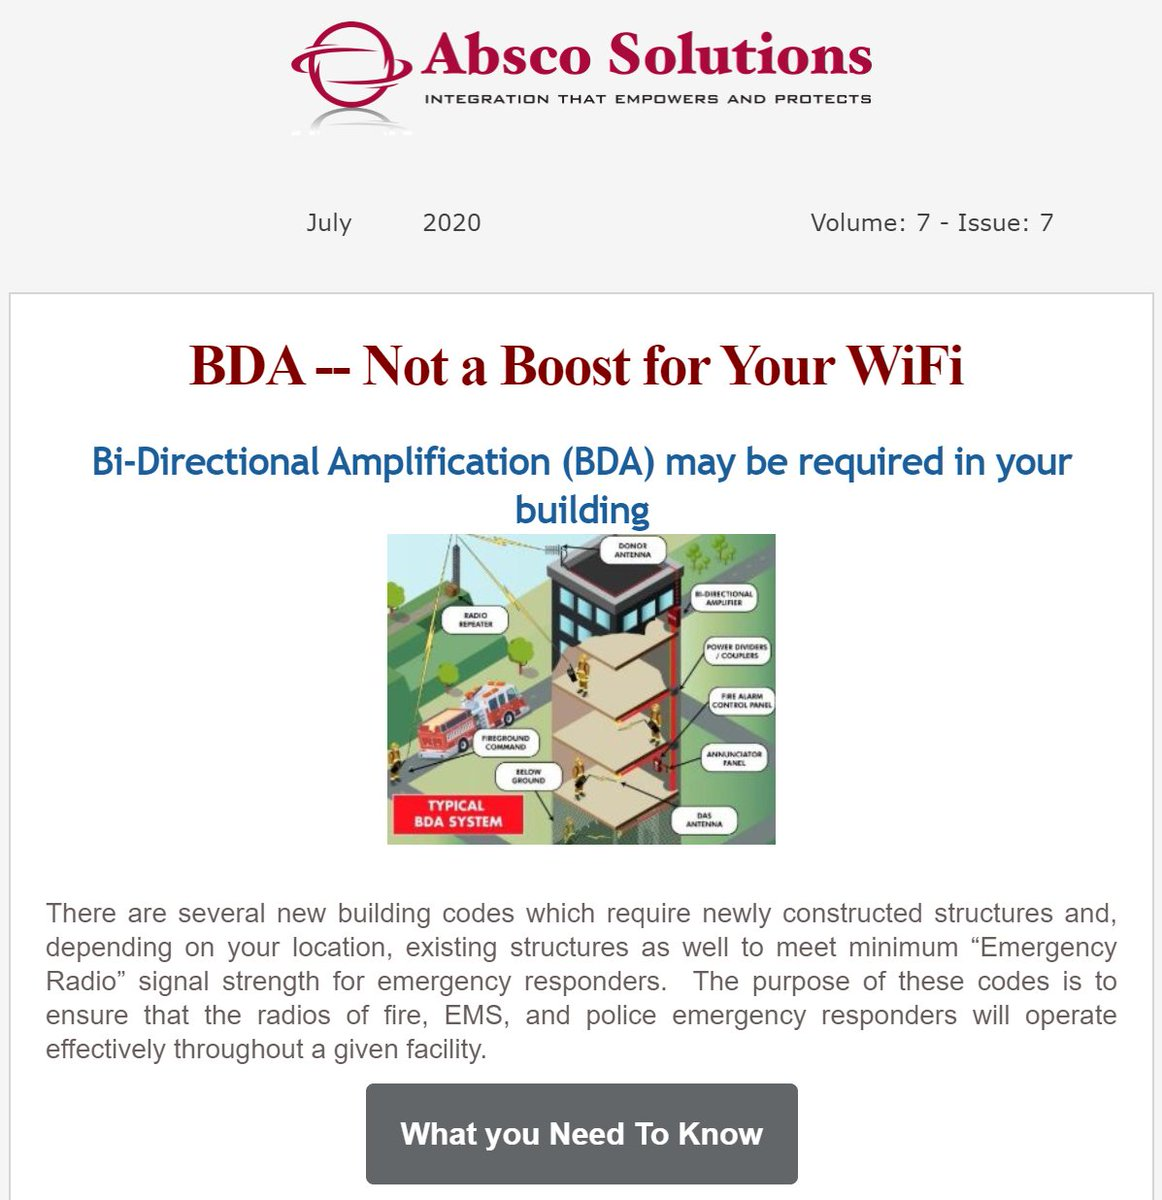 Check out our July Newsletter BDA -- Not a Boost for Your WiFi - https://mailchi.mp/212555d94b43/bda-not-a-boost-for-your-wifi … #BDA #Honeywell #TechnologyTrends #Avigilonpic.twitter.com/2J3nBevoeQ